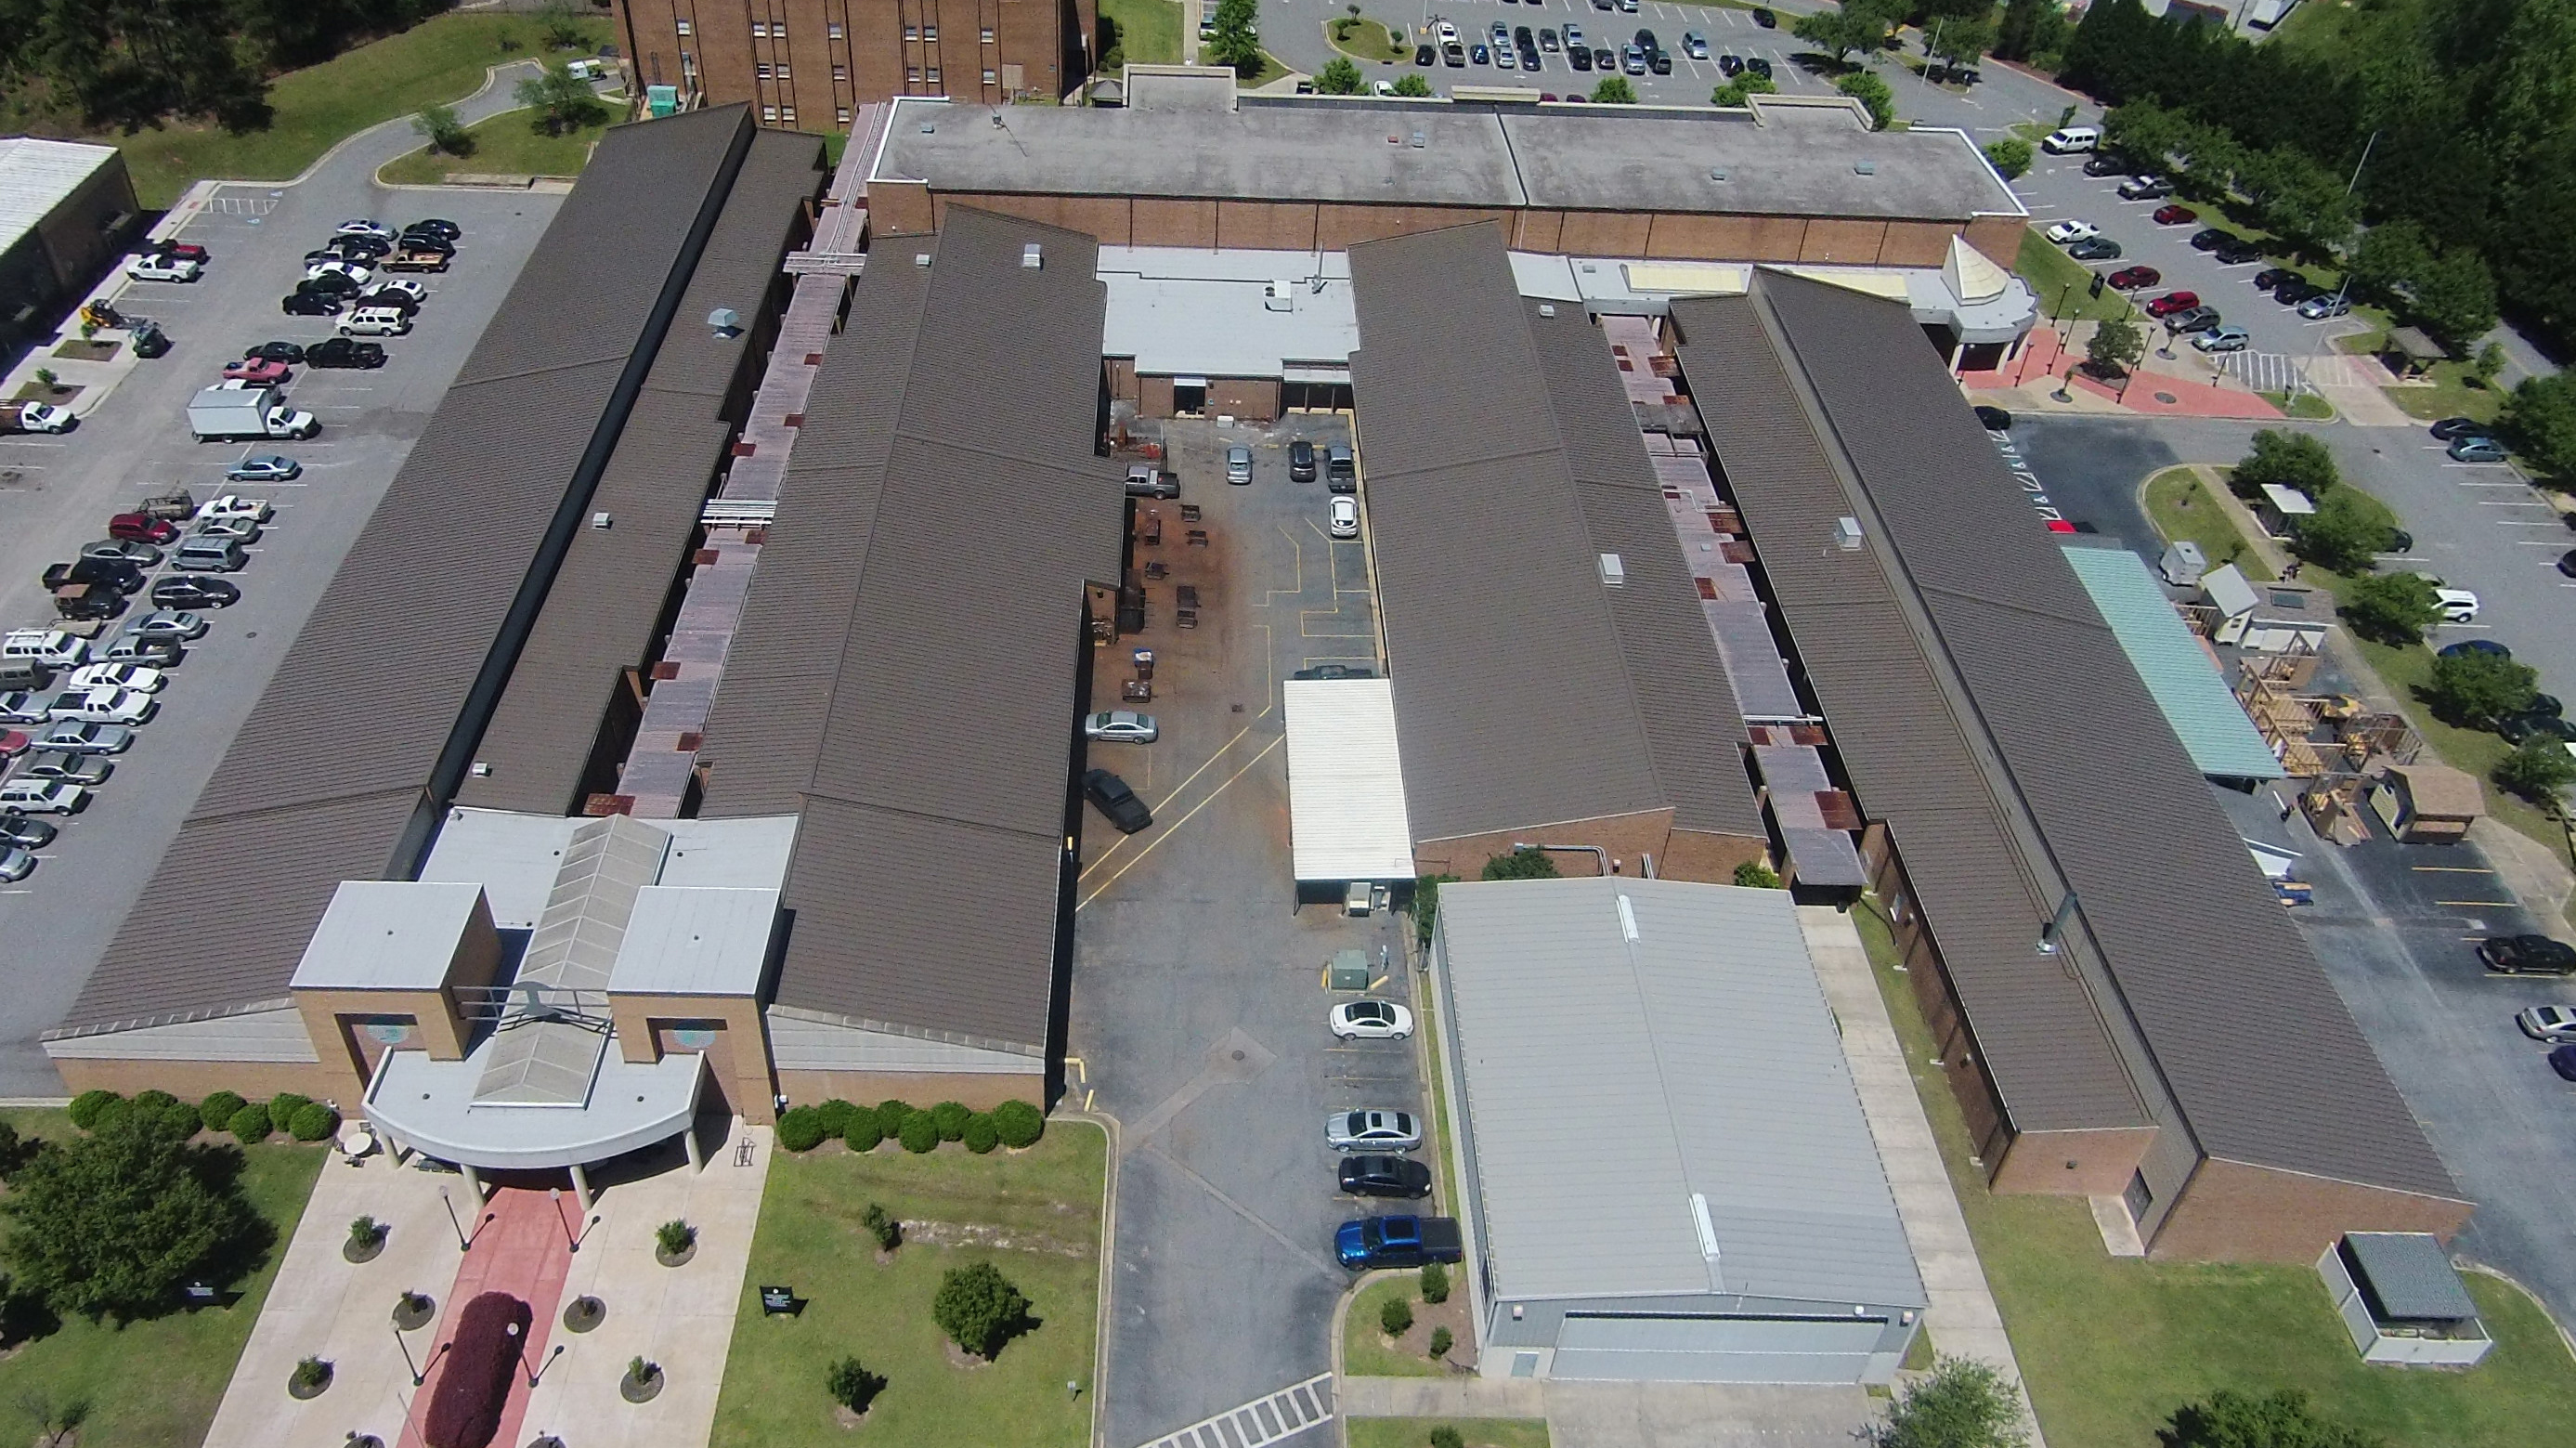 238T Symmetrical Standing Seam Panel Solves Problem for Georgia Technical College